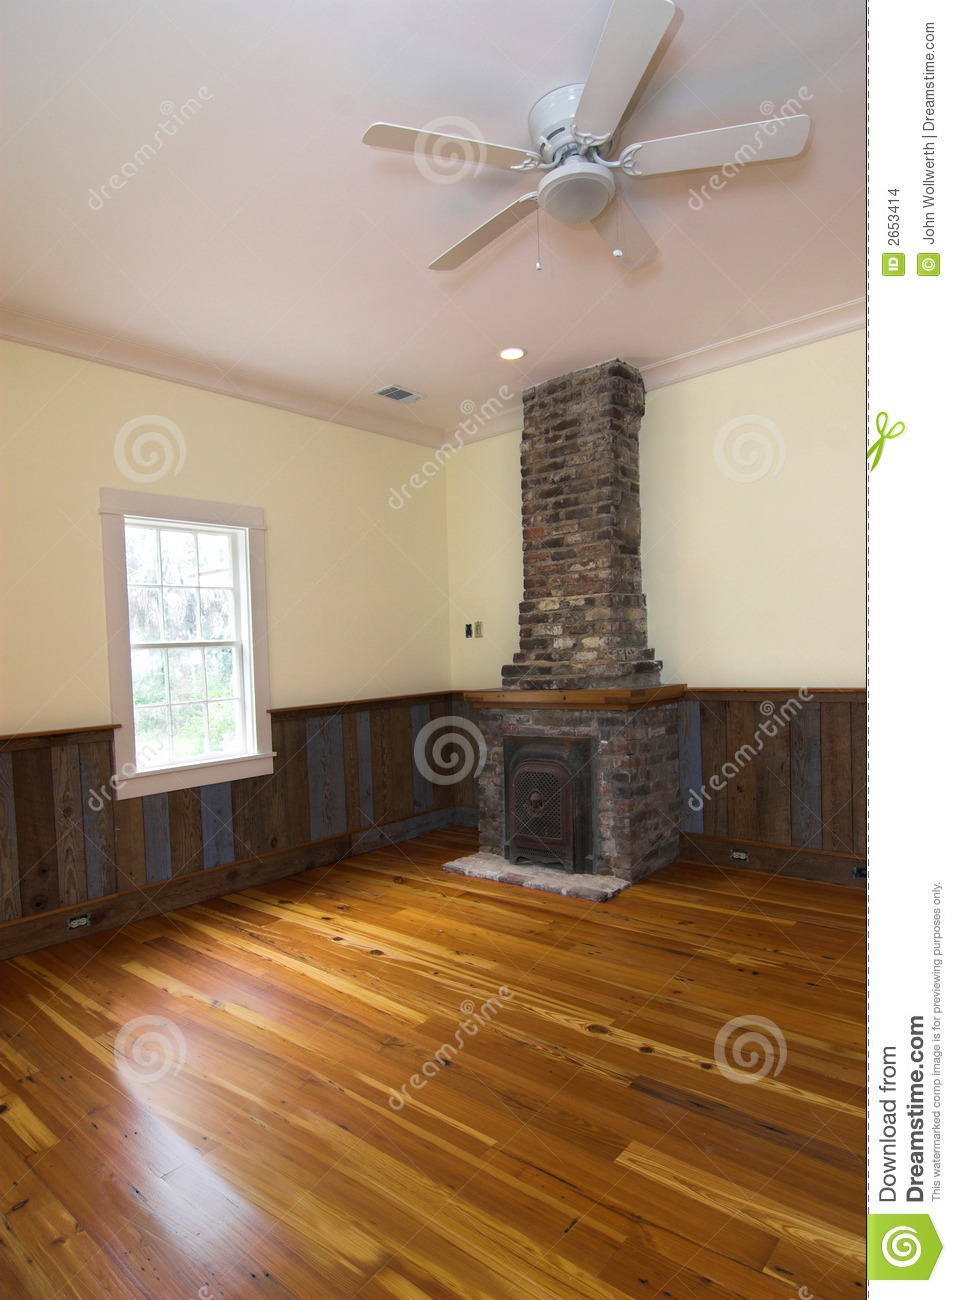 colonial home interior stock images image 2653414